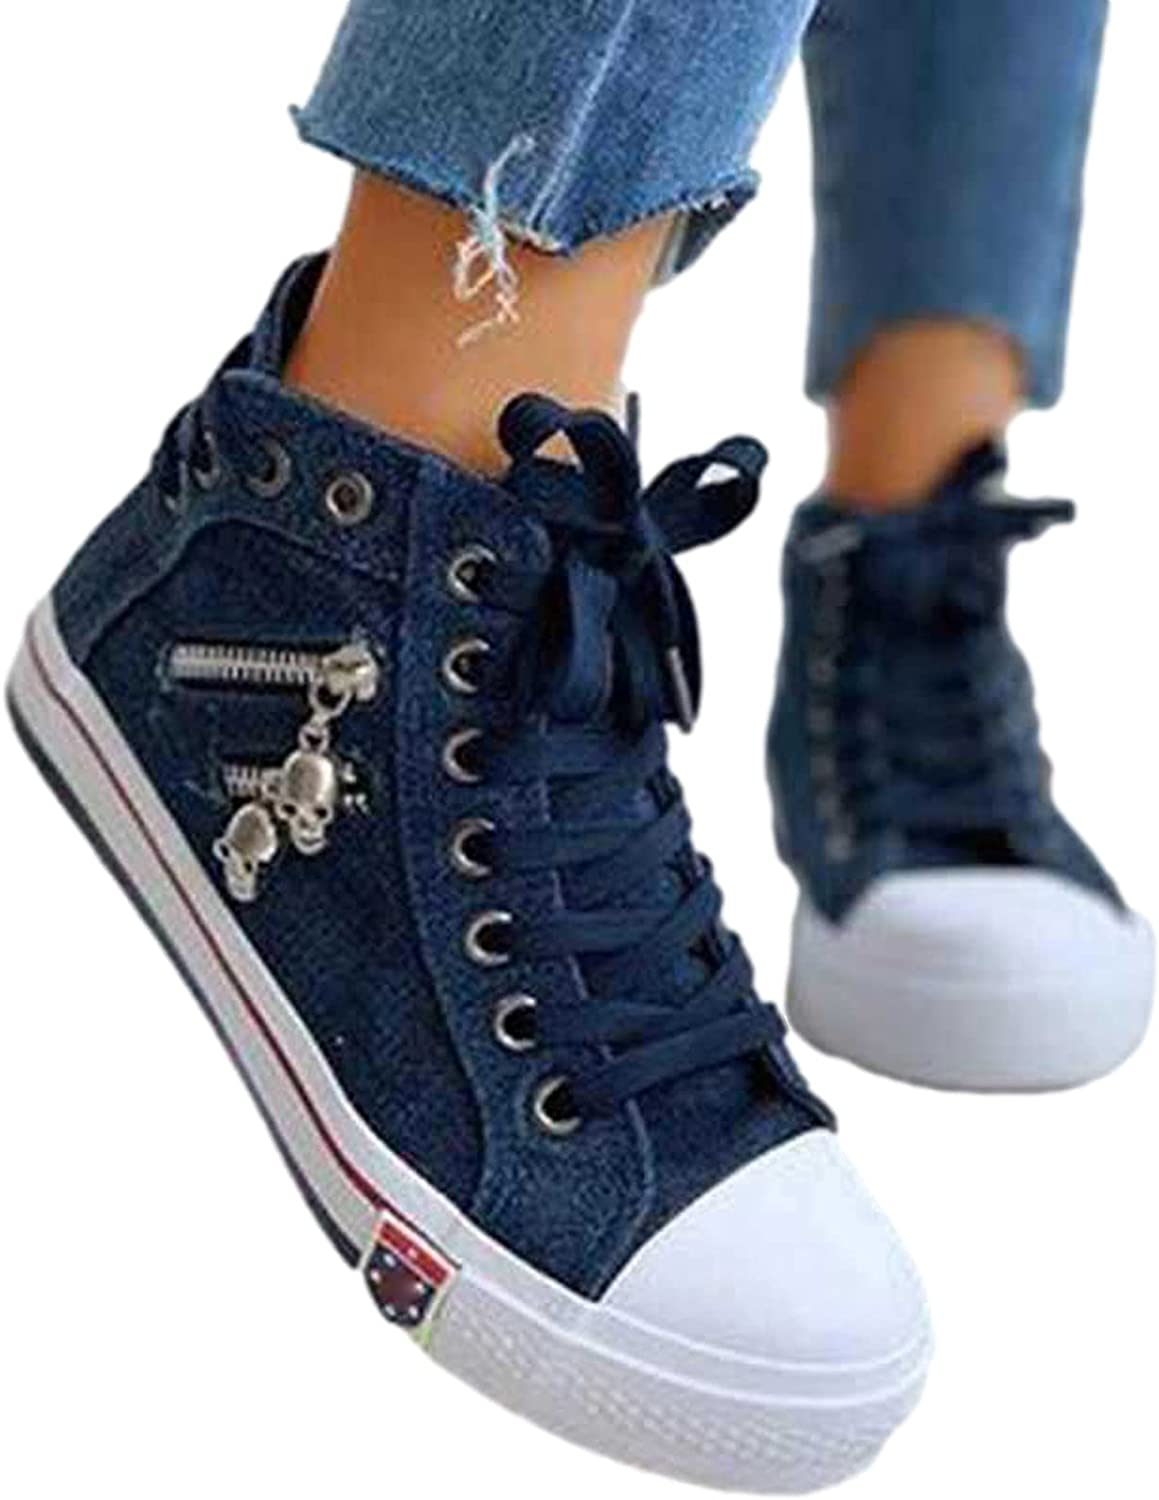 Womens High Top Canvas Sneakers Canvas Shoes, Women's Fashion Sneakers Comfort Flat Fashion Shoes Fashion Sneakers for Women, Classic Zipper Canvas Shoes Casual Shoes for Walking